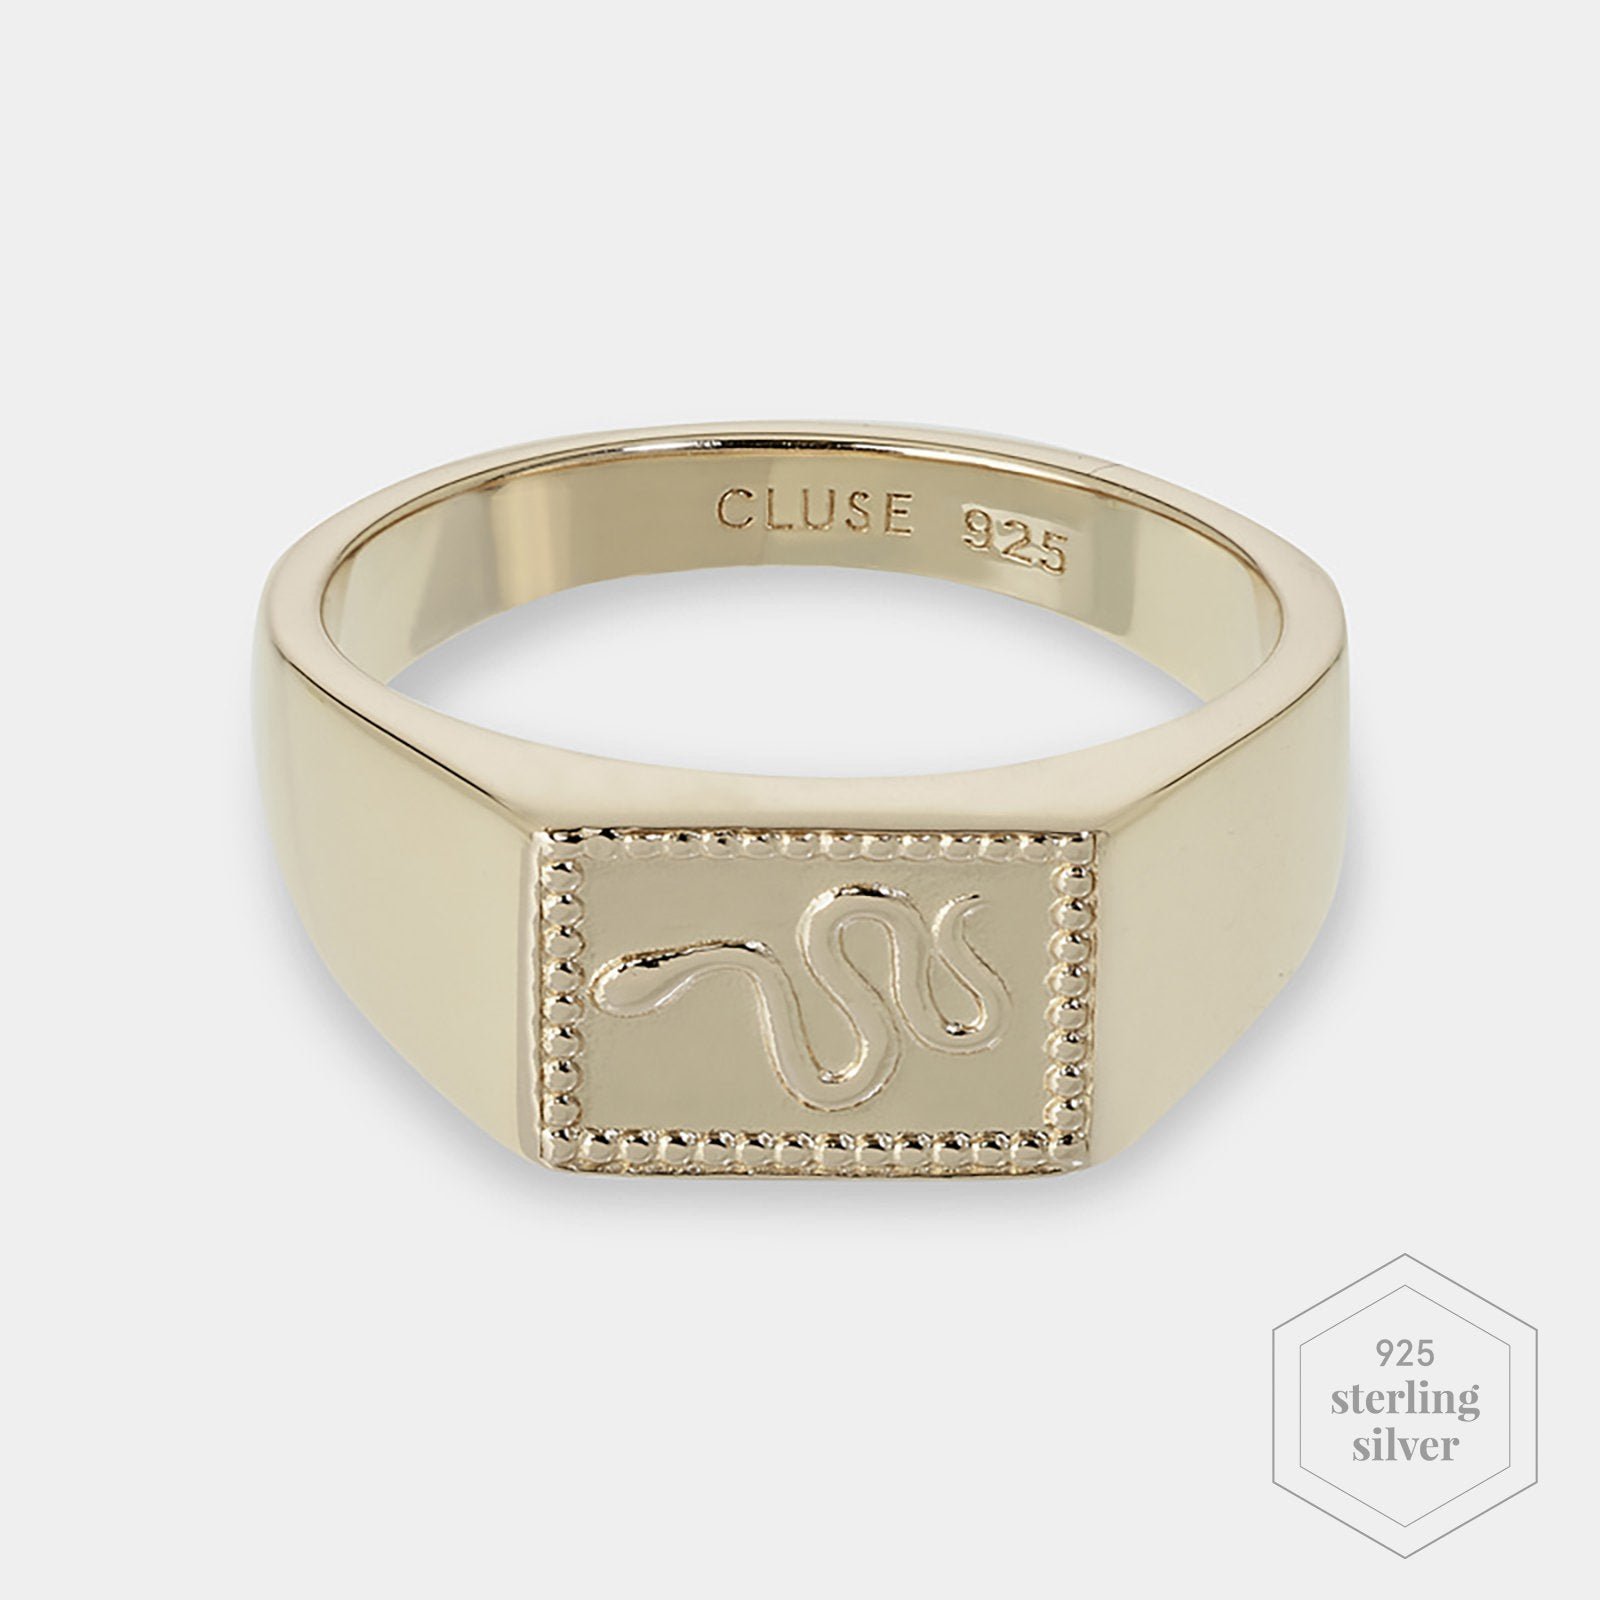 CLUSE Force Tropicale Gold Signet Rectangular Ring 52 CLJ41012-52 - Ring 52